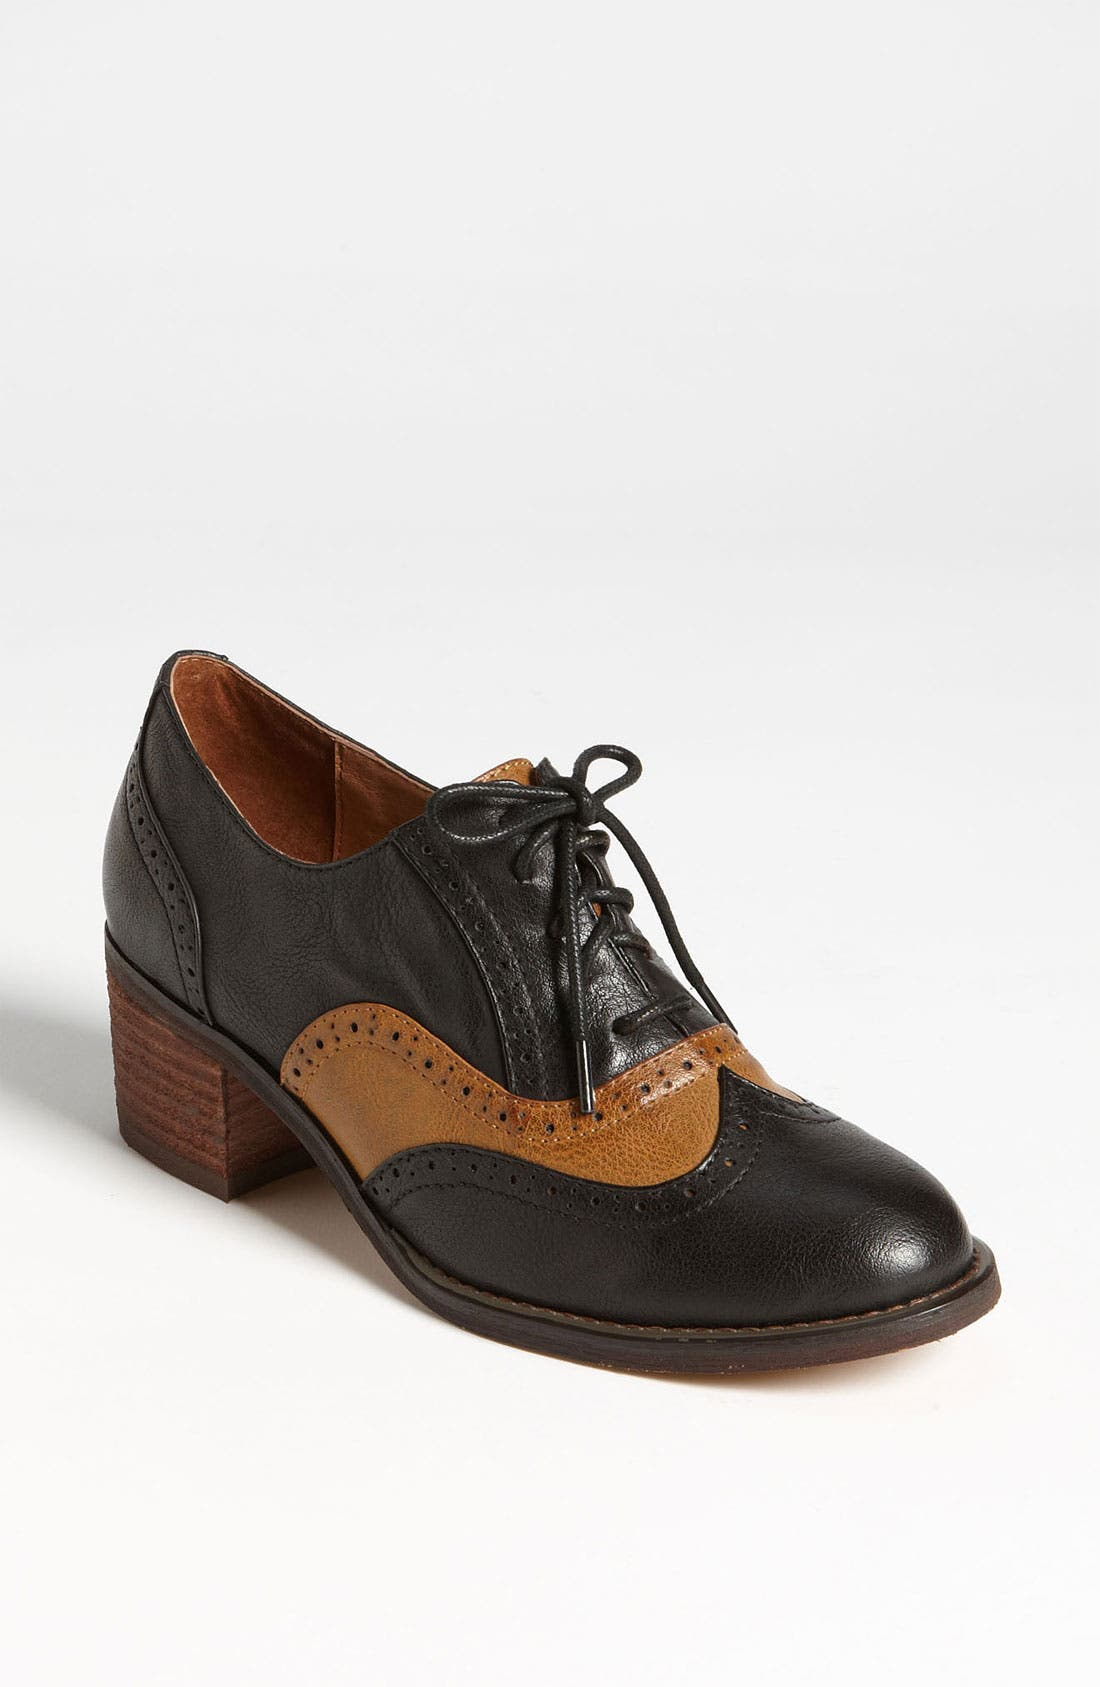 JEFFREY CAMPBELL,                             'Williams' Oxford,                             Main thumbnail 1, color,                             002